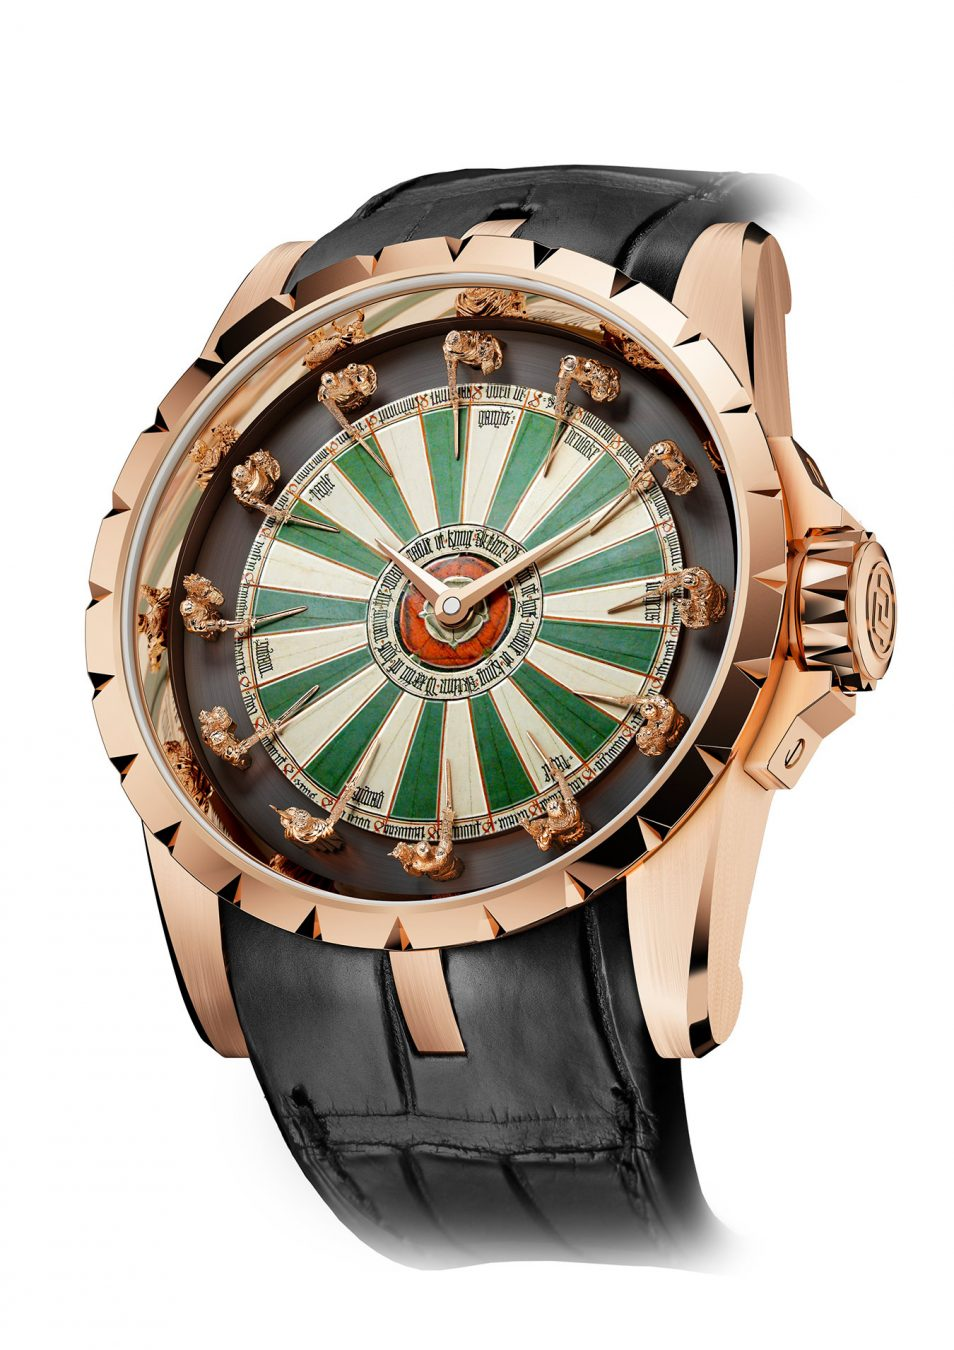 Knights Of Round Table Watch Roger Dubuis Excalibur Round Table Watch Montecristo